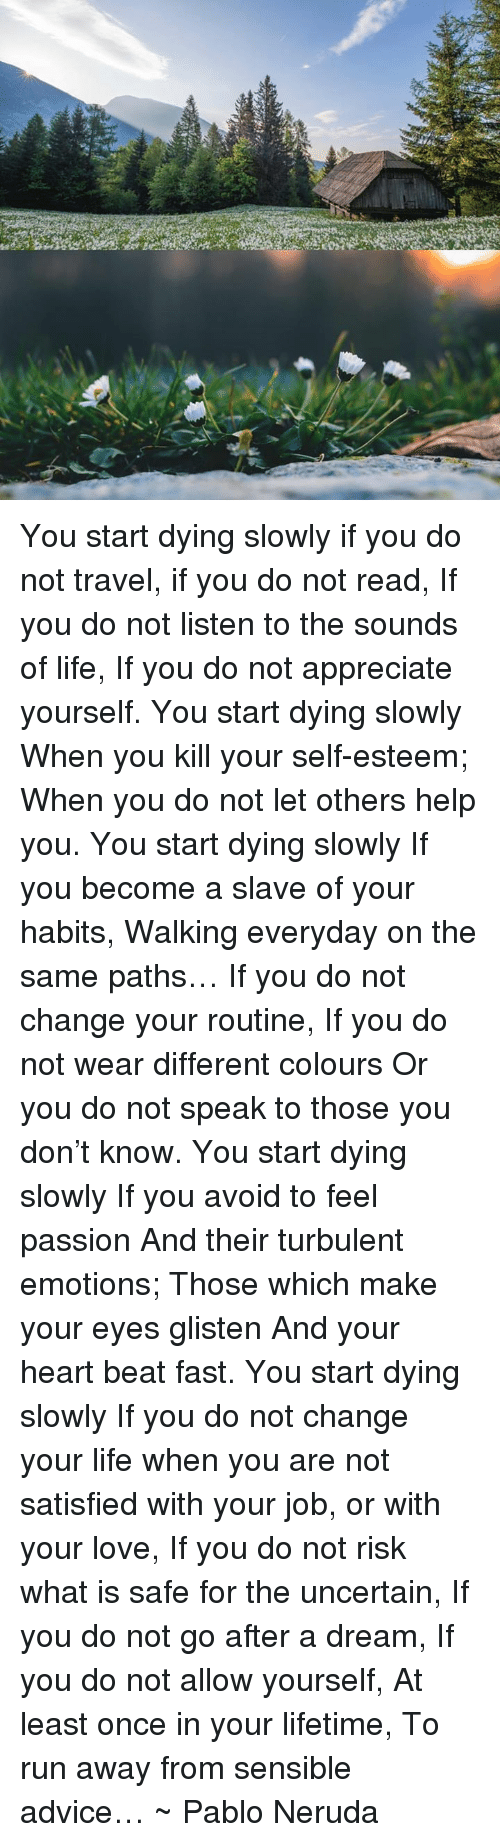 You start dying slowly if you do not travel if you do not read if a dream memes and pablo neruda you start dying slowly if you do publicscrutiny Choice Image